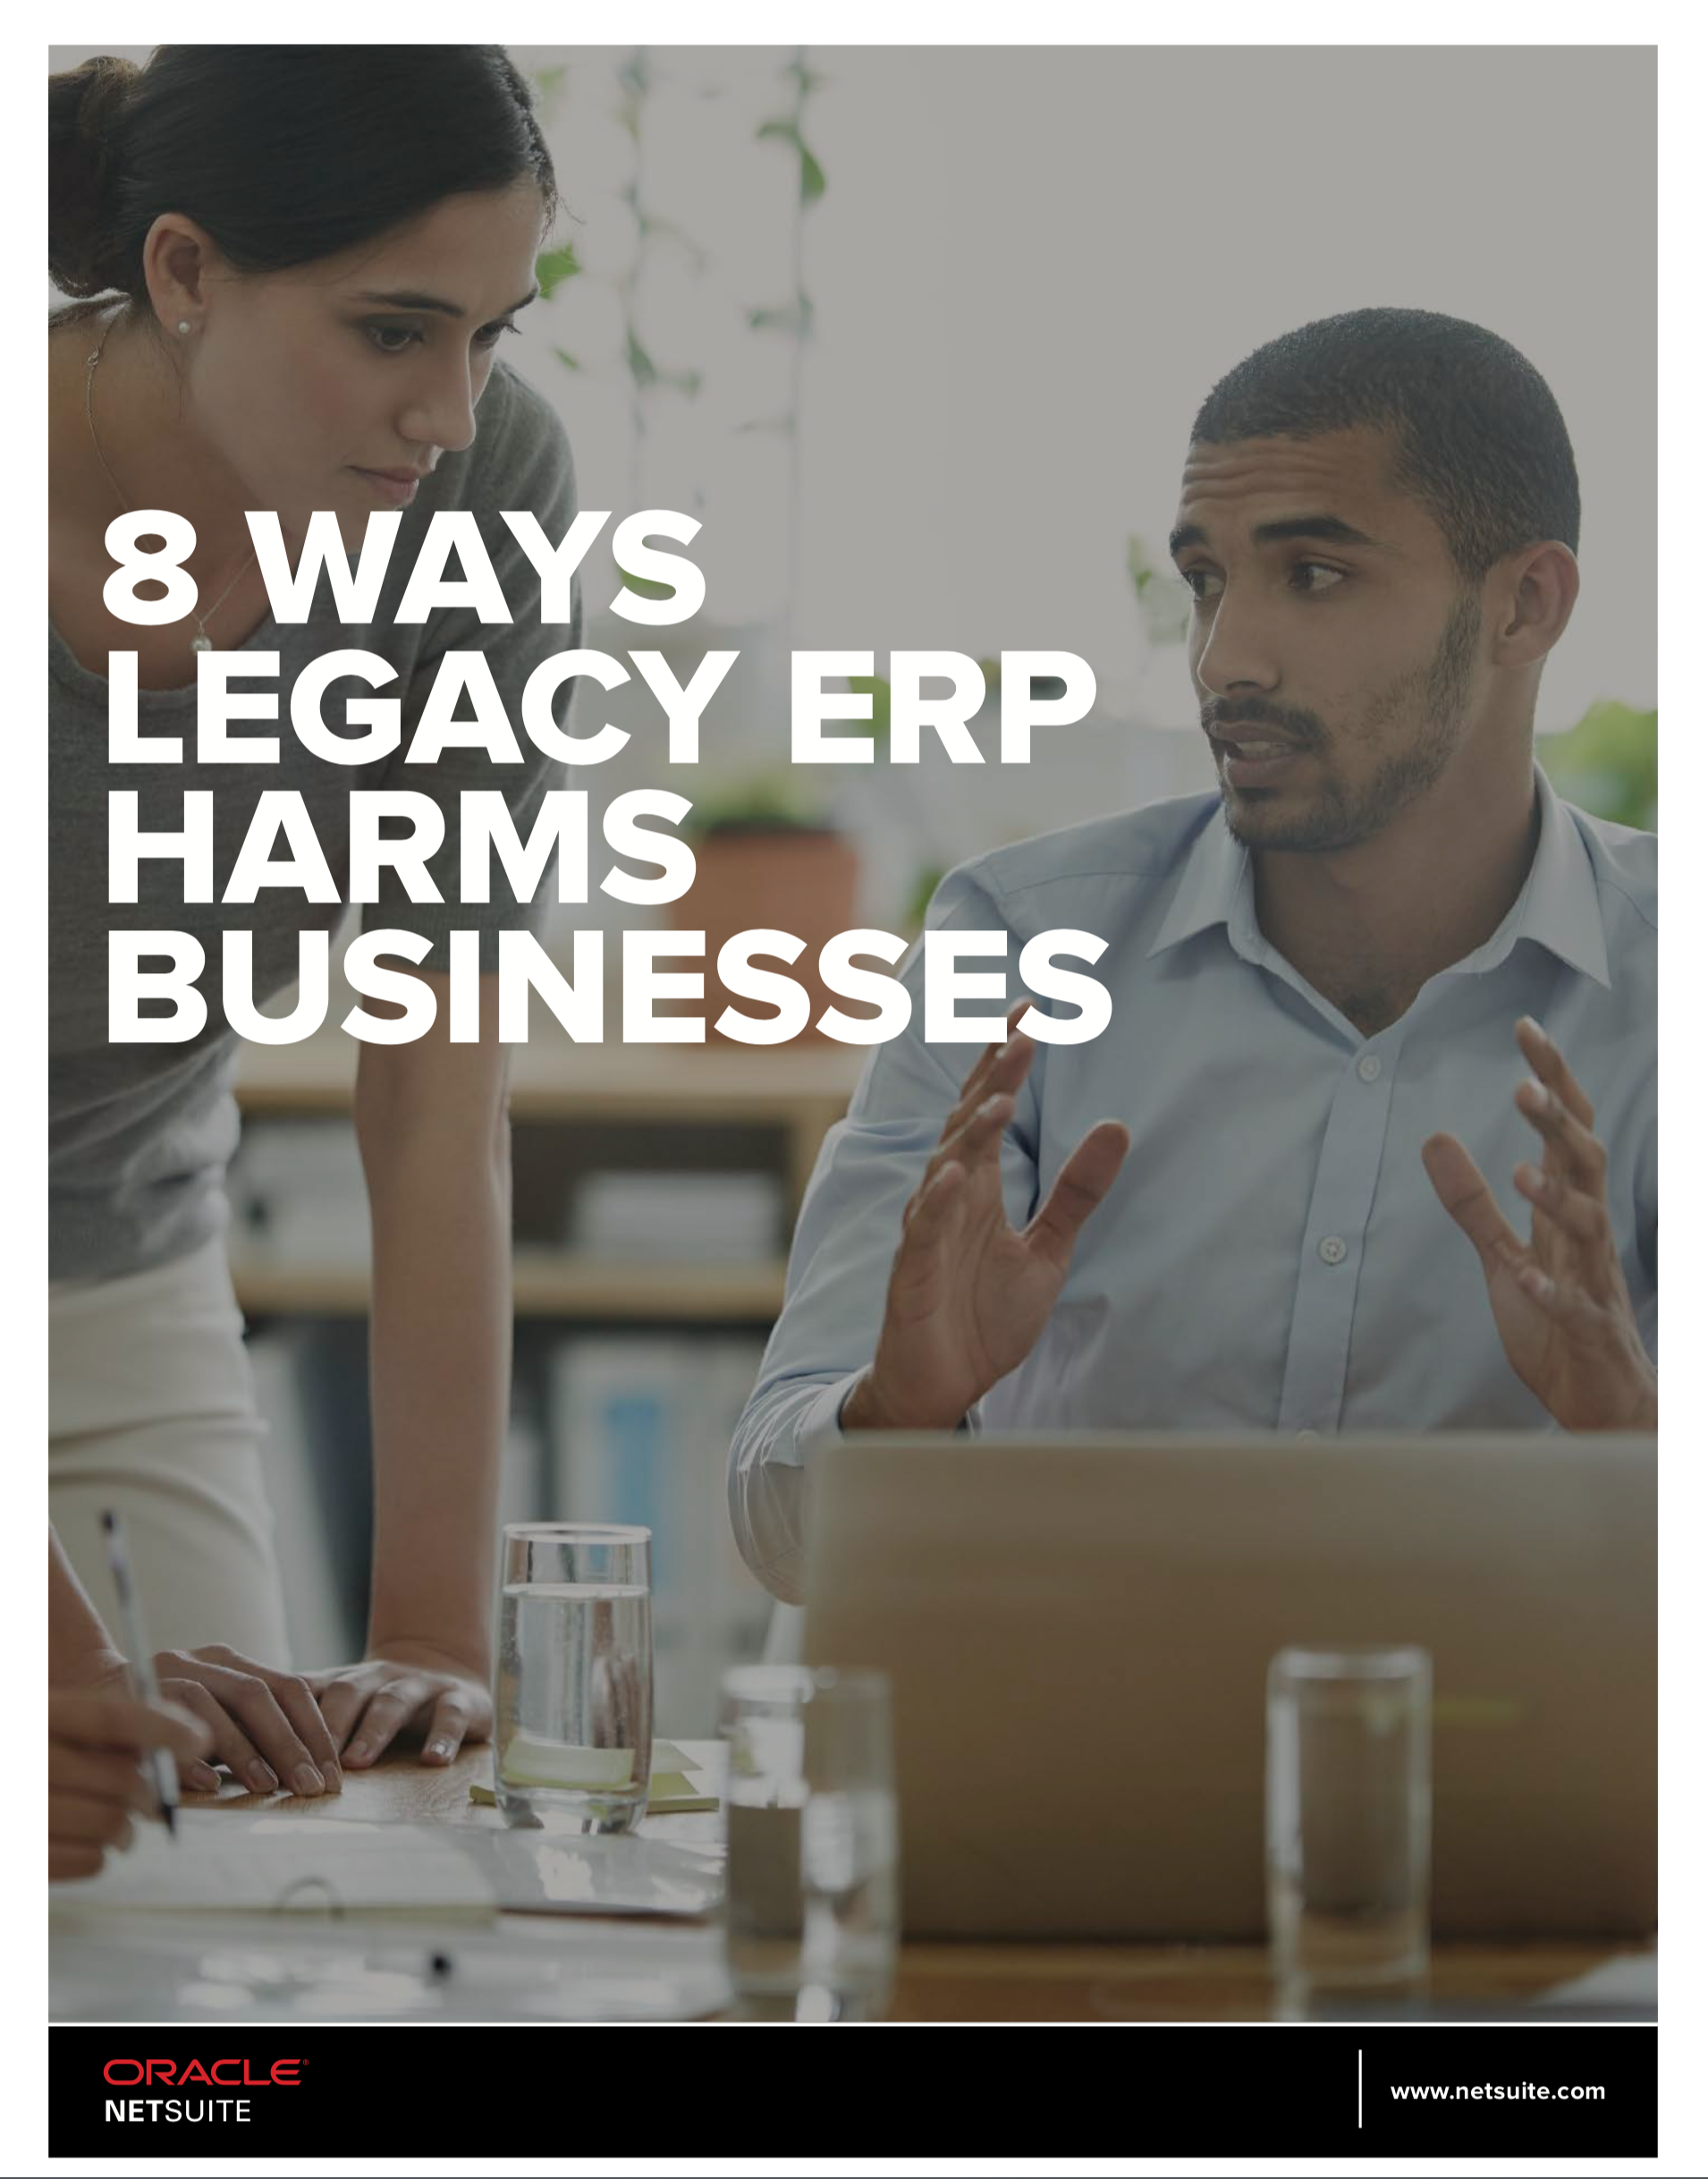 8 Ways a Legacy ERP Harms Business